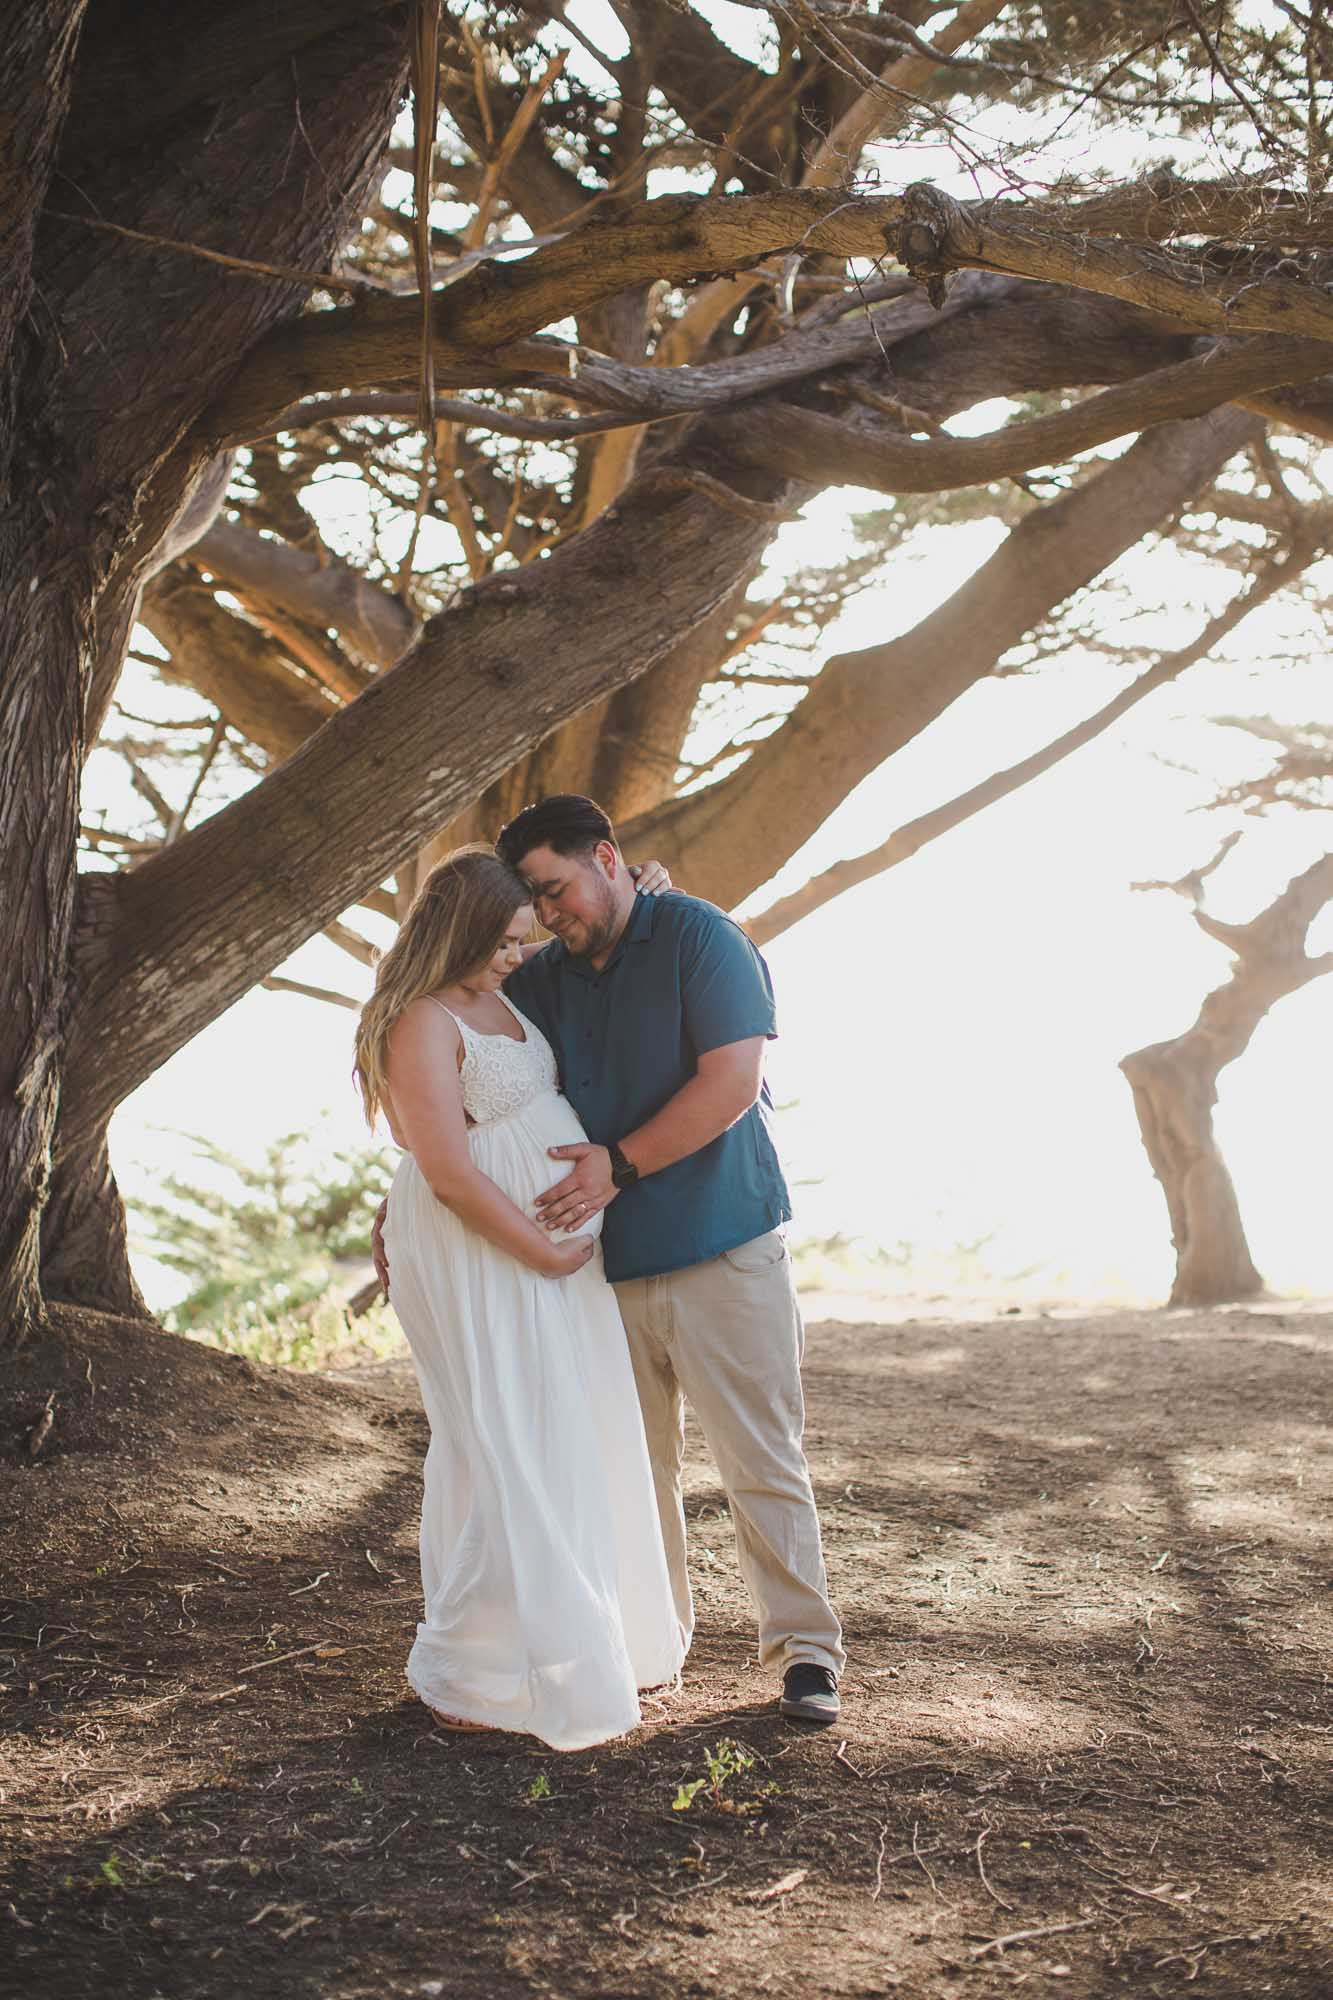 pacifica_maternity_session_california_family_photographer_00017.jpg